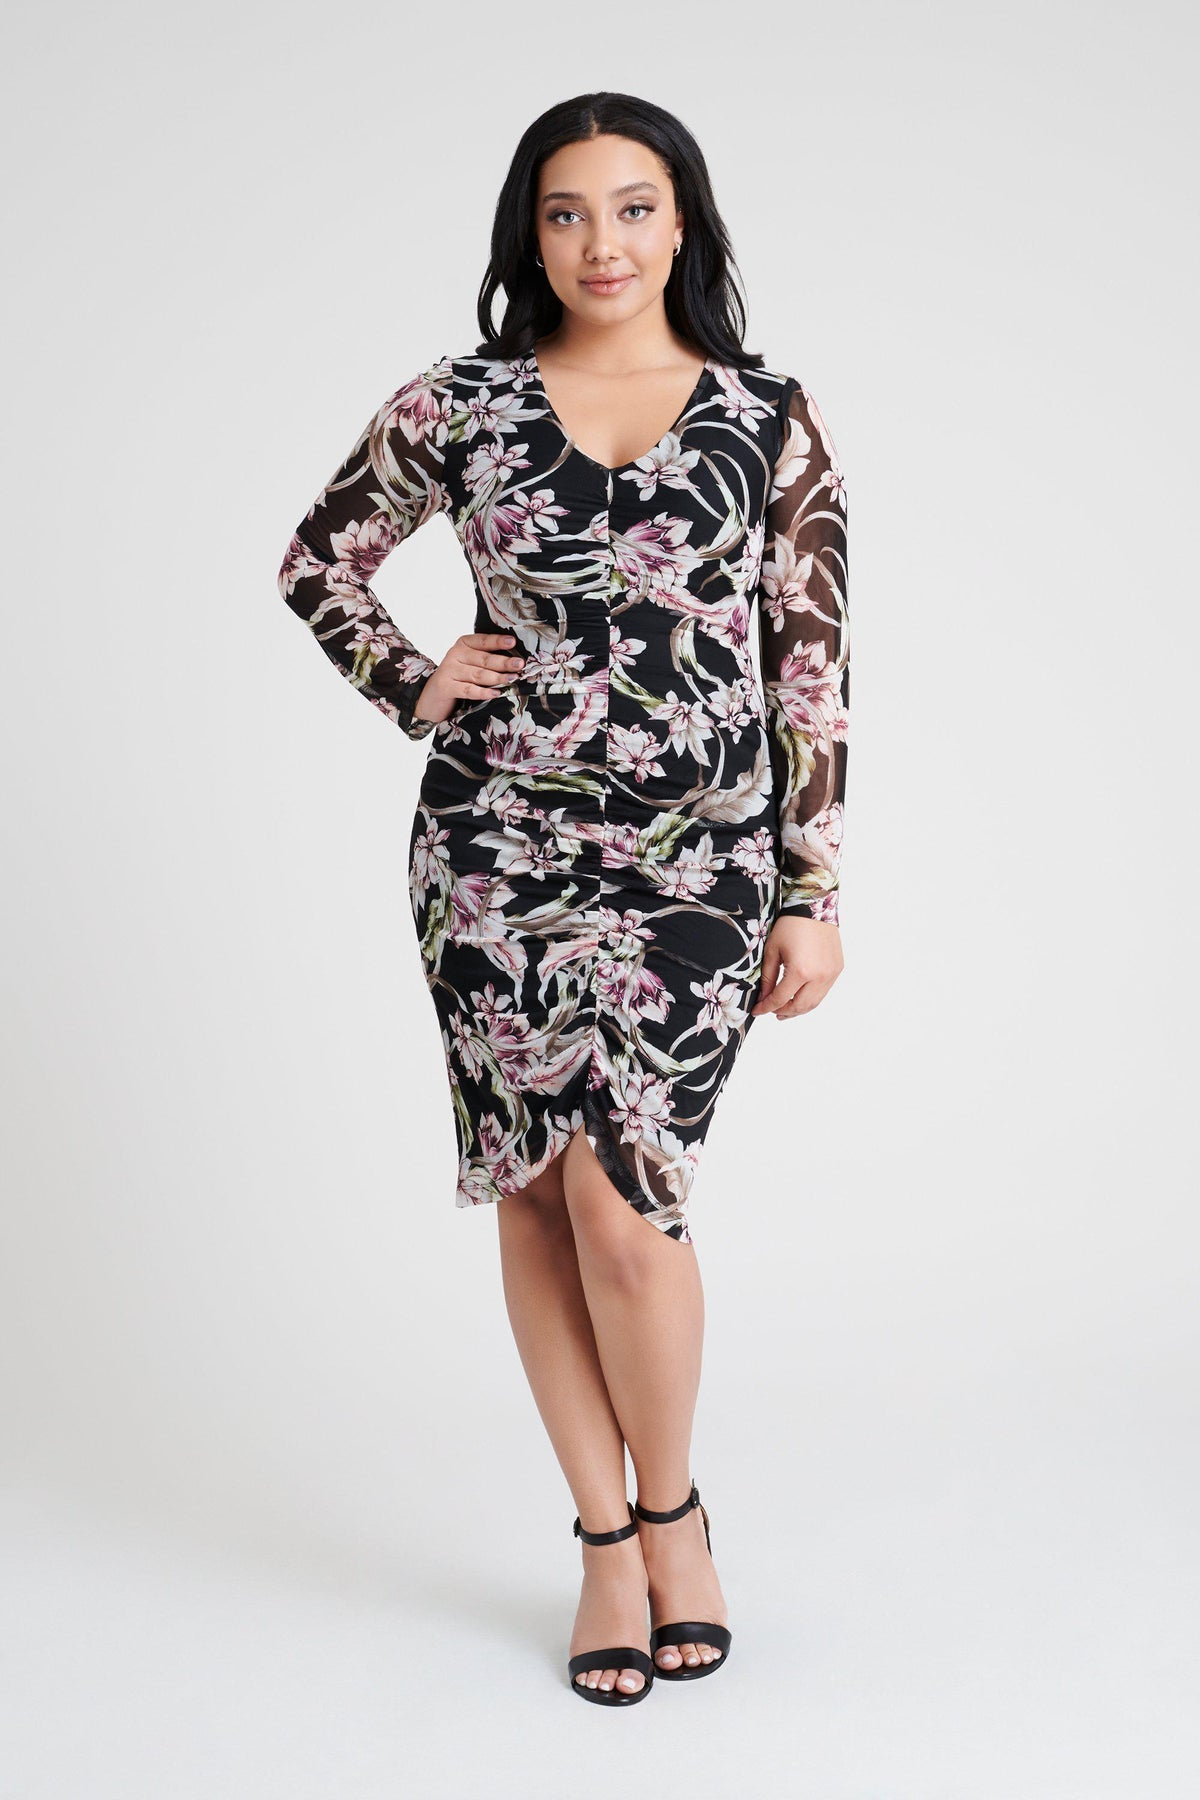 woman-wearing-connected-apparel-Riley Floral Print Dress-posing-on-plain-background